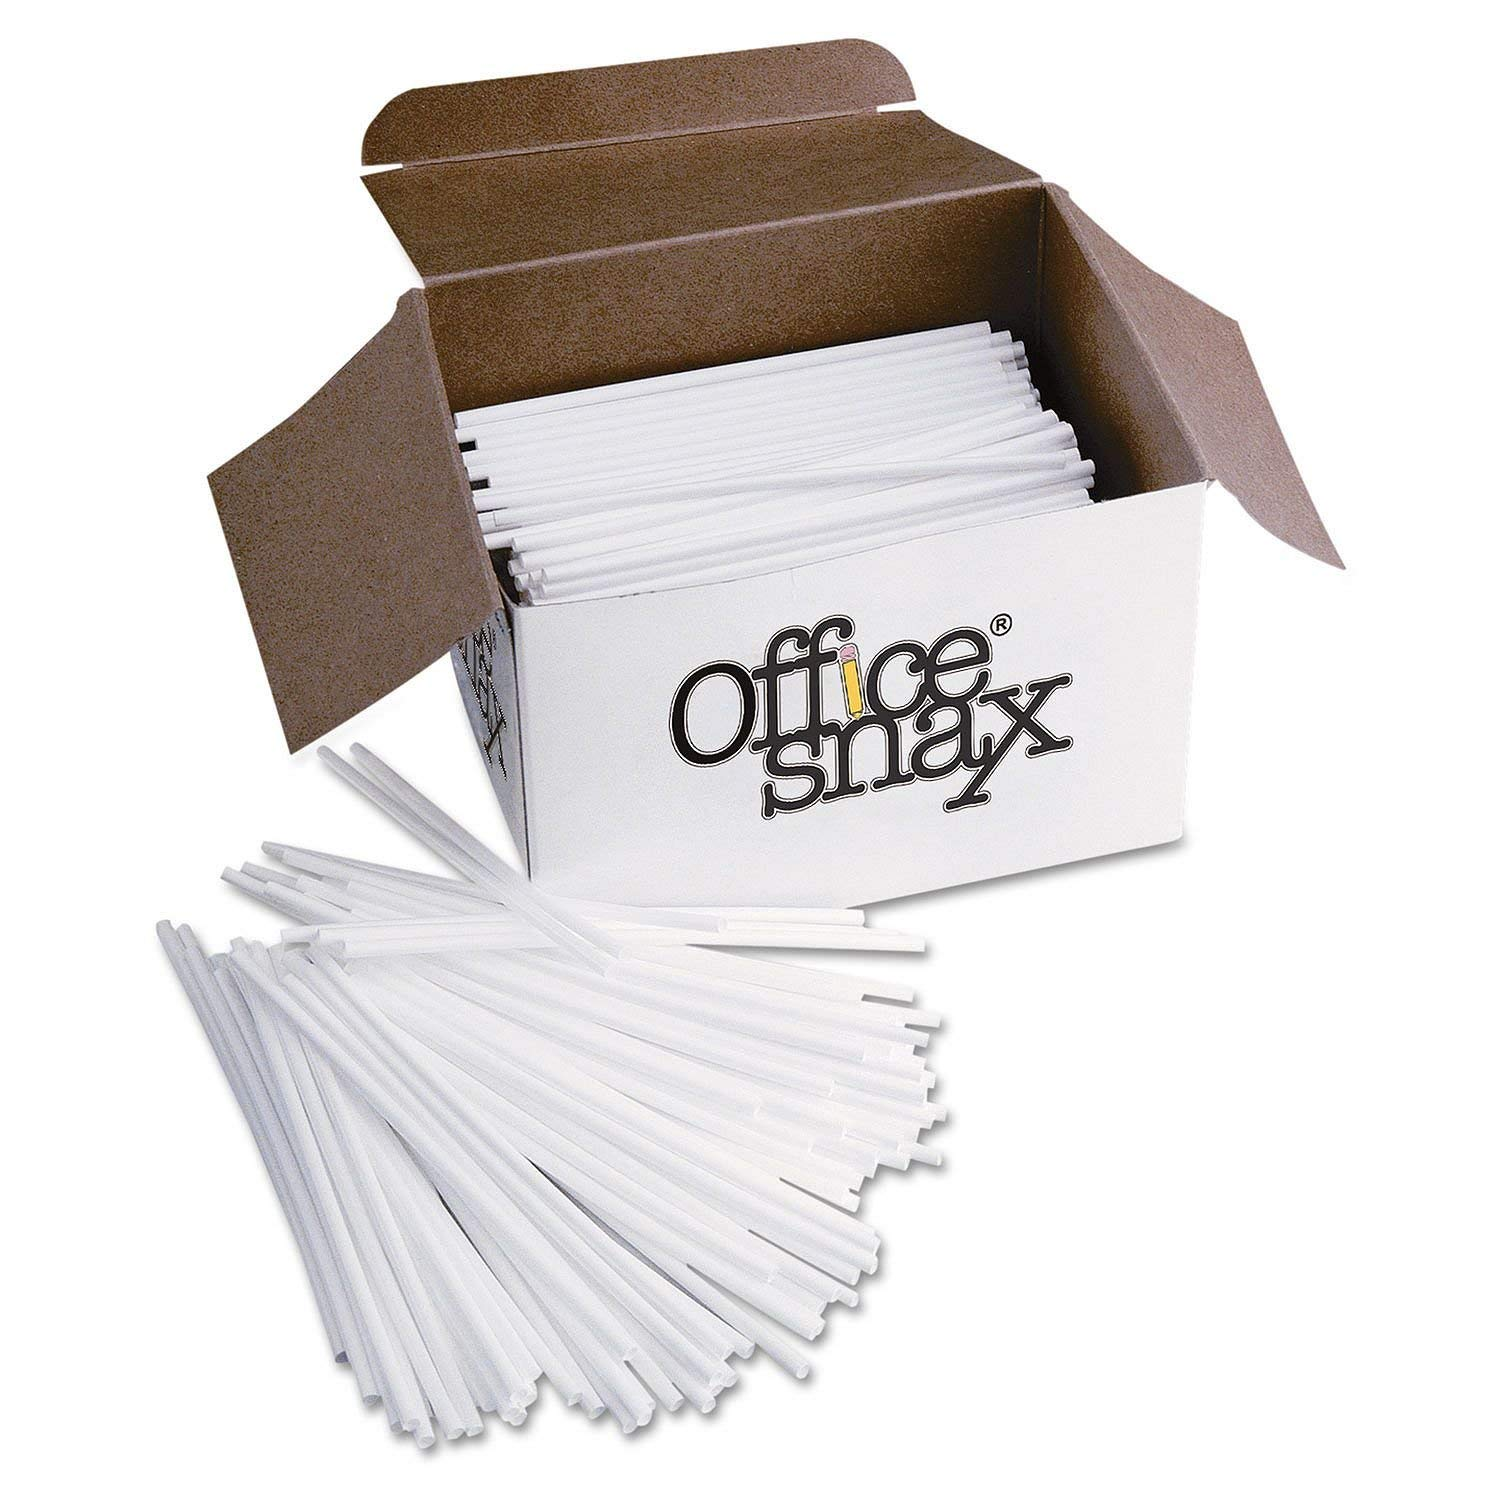 1,000 ct. Product of Office Snax Plastic Stir Sticks Bulk Savings - Pack of 3 -